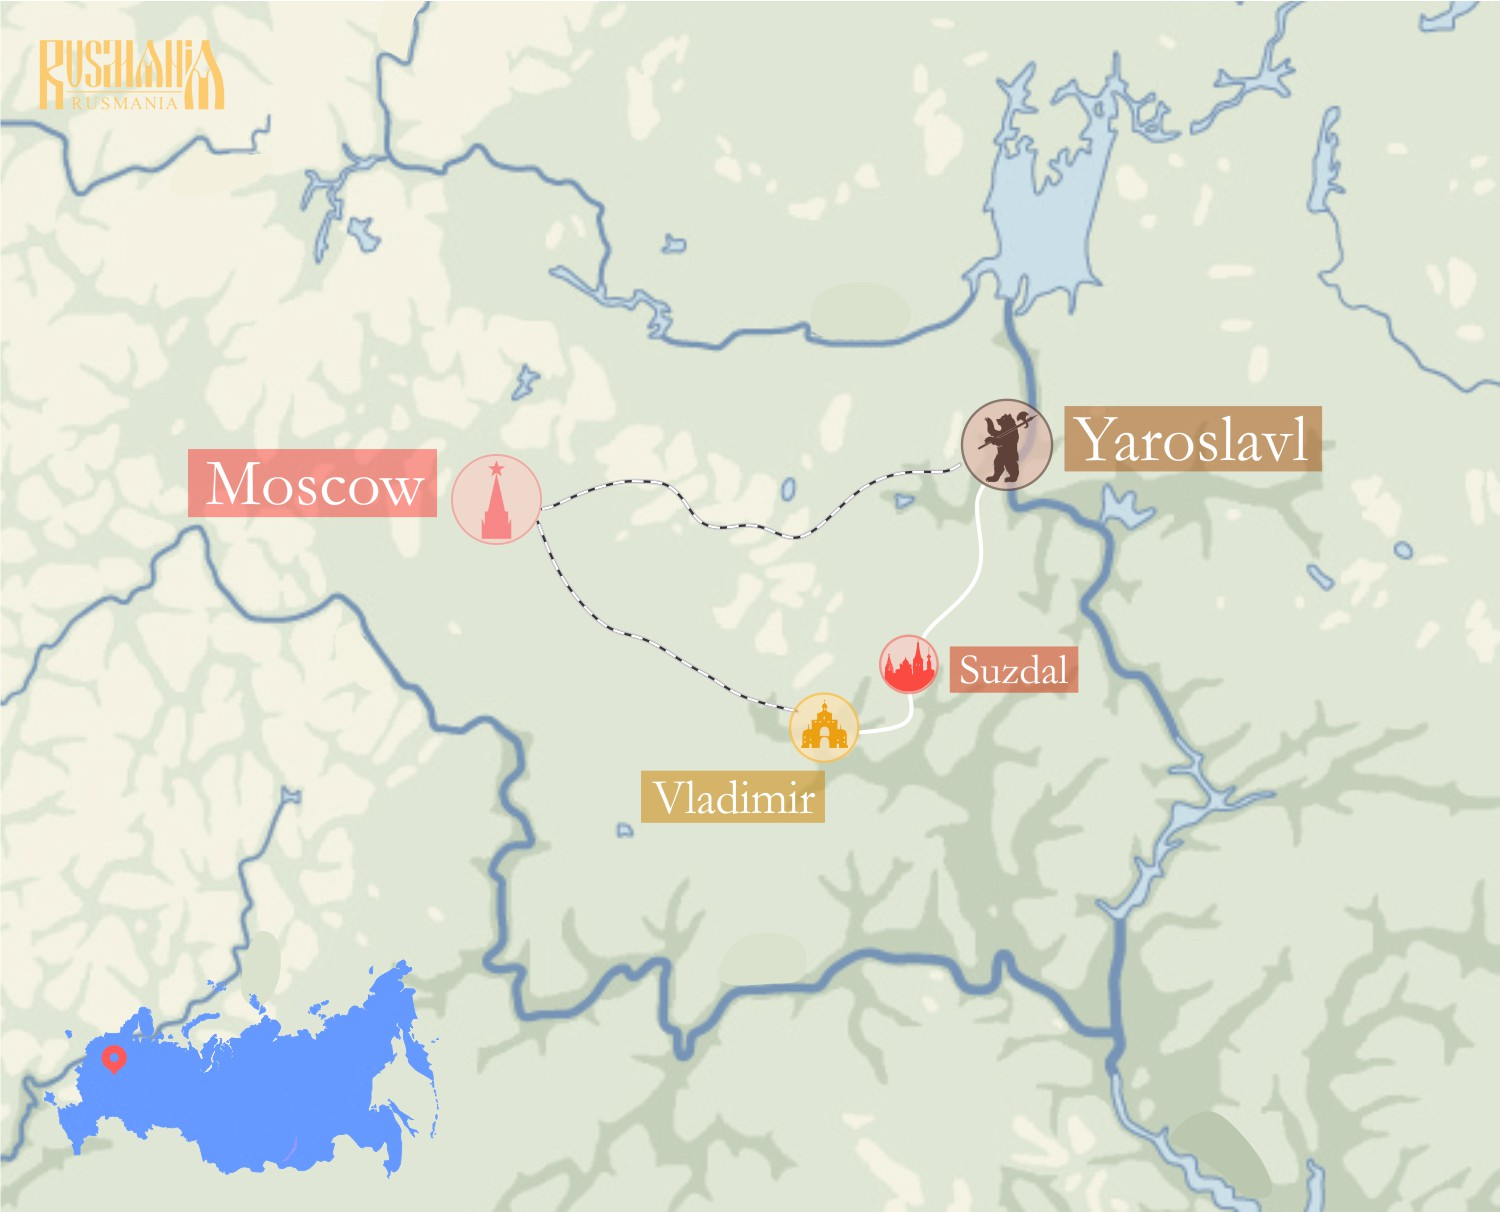 Where is Yaroslavl